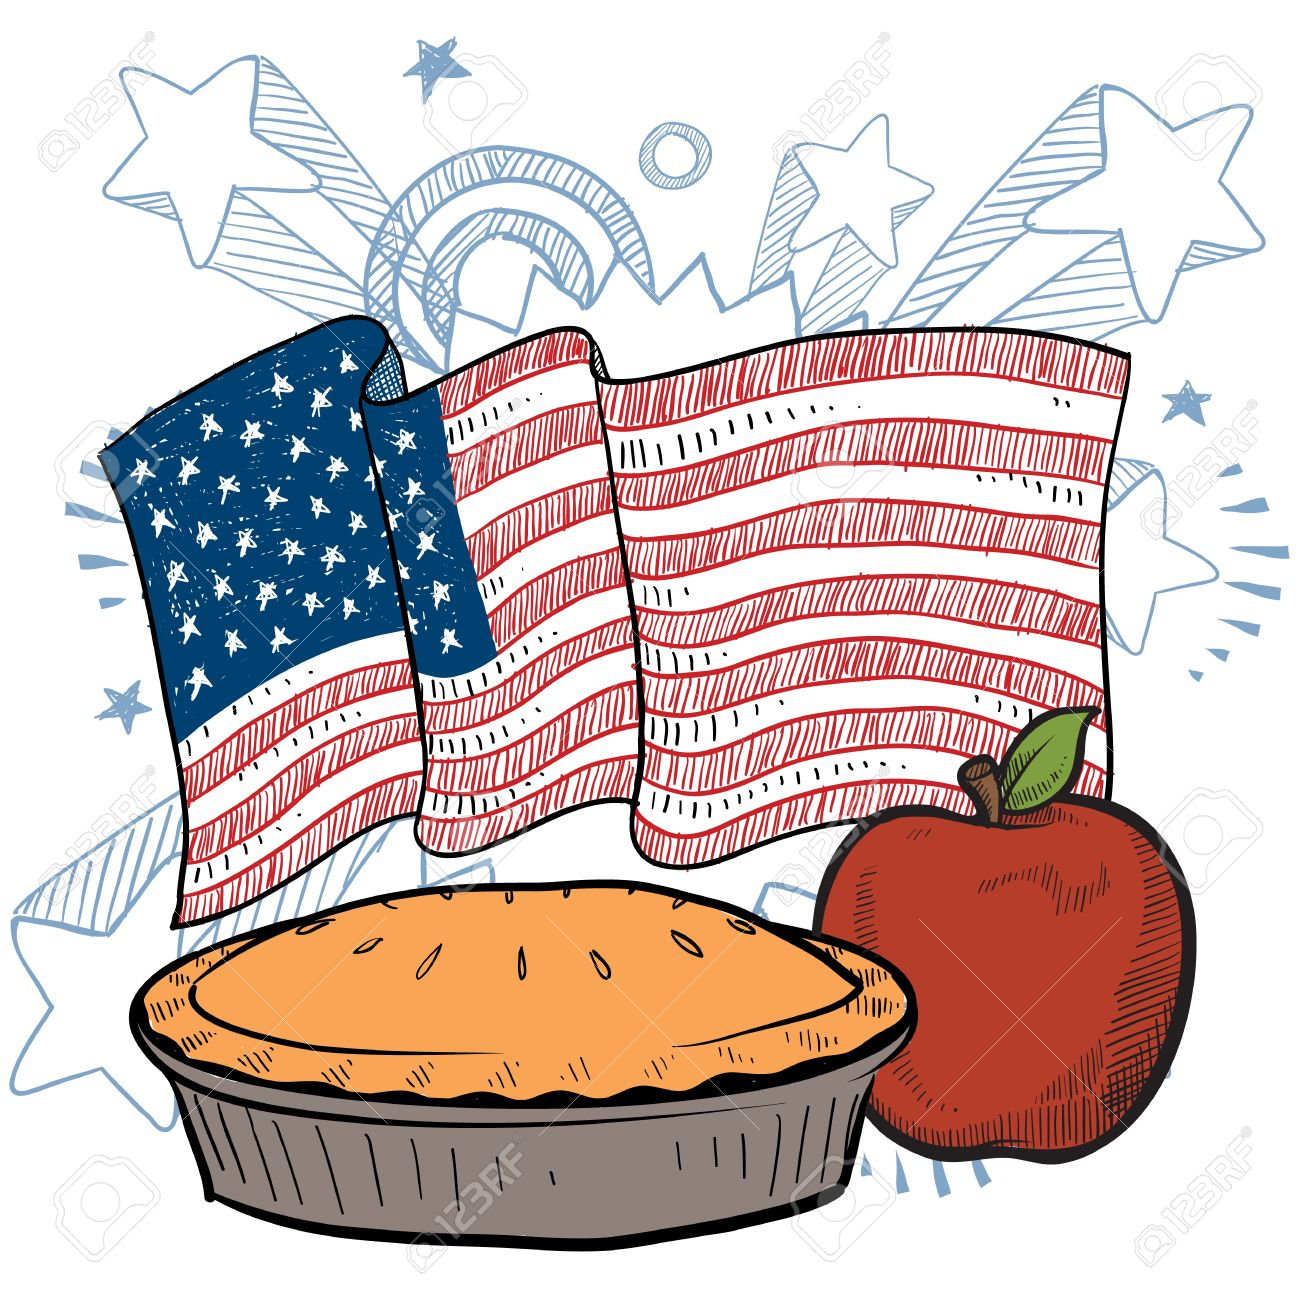 Doodle style colorful apple pie with American flag sketch in vector format Stock Vector - 14511788